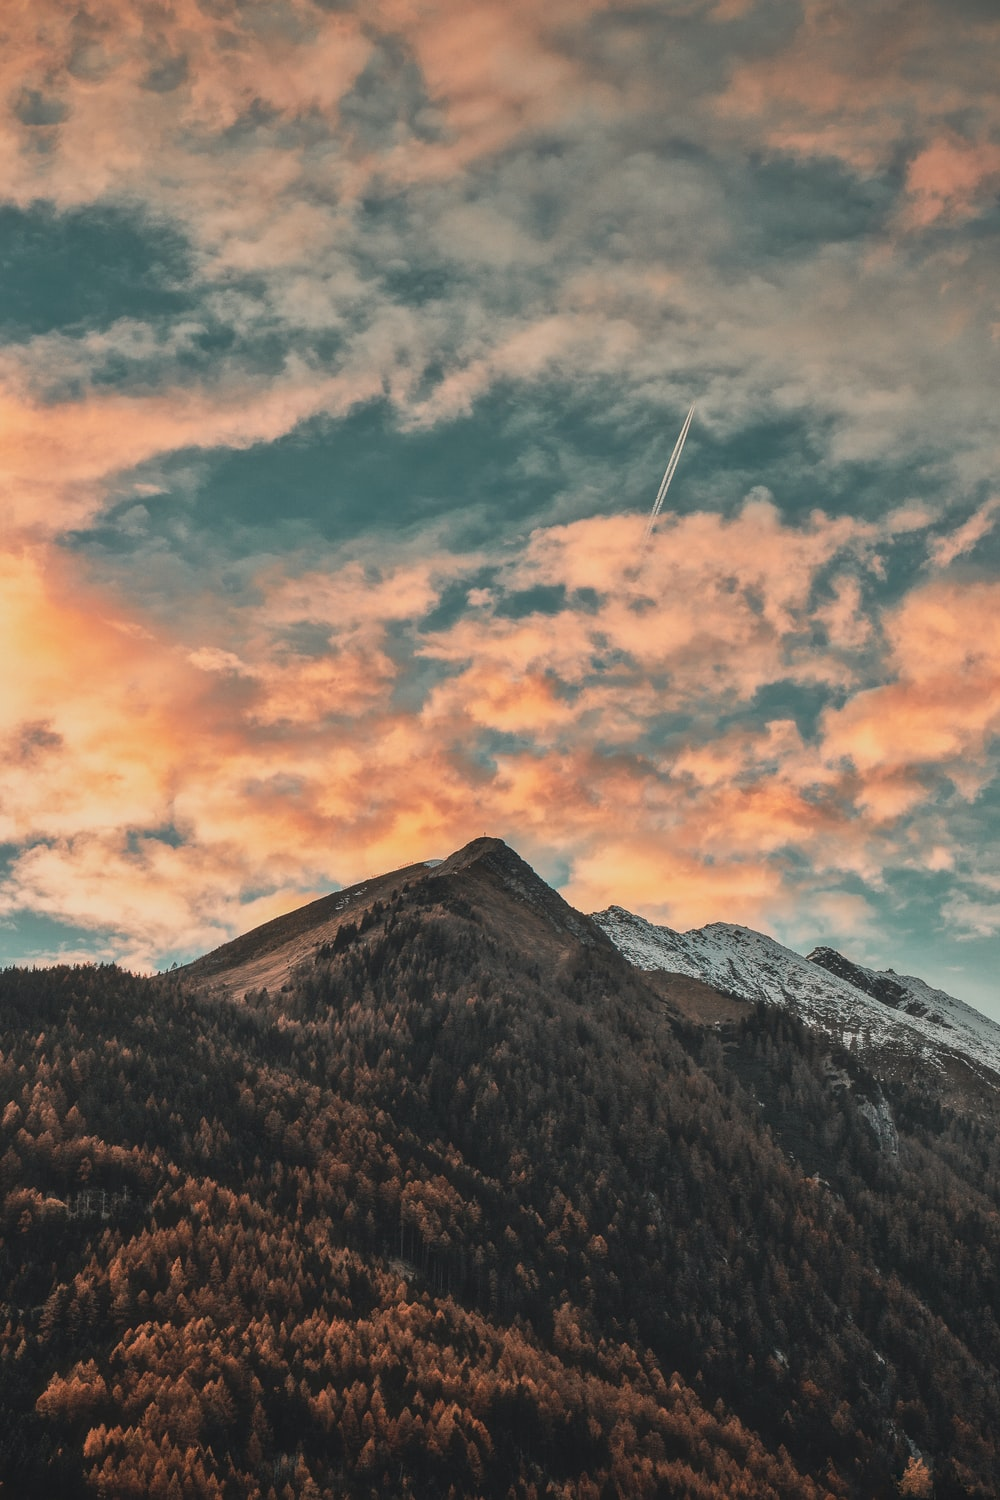 mountain top under grey and orange clouds